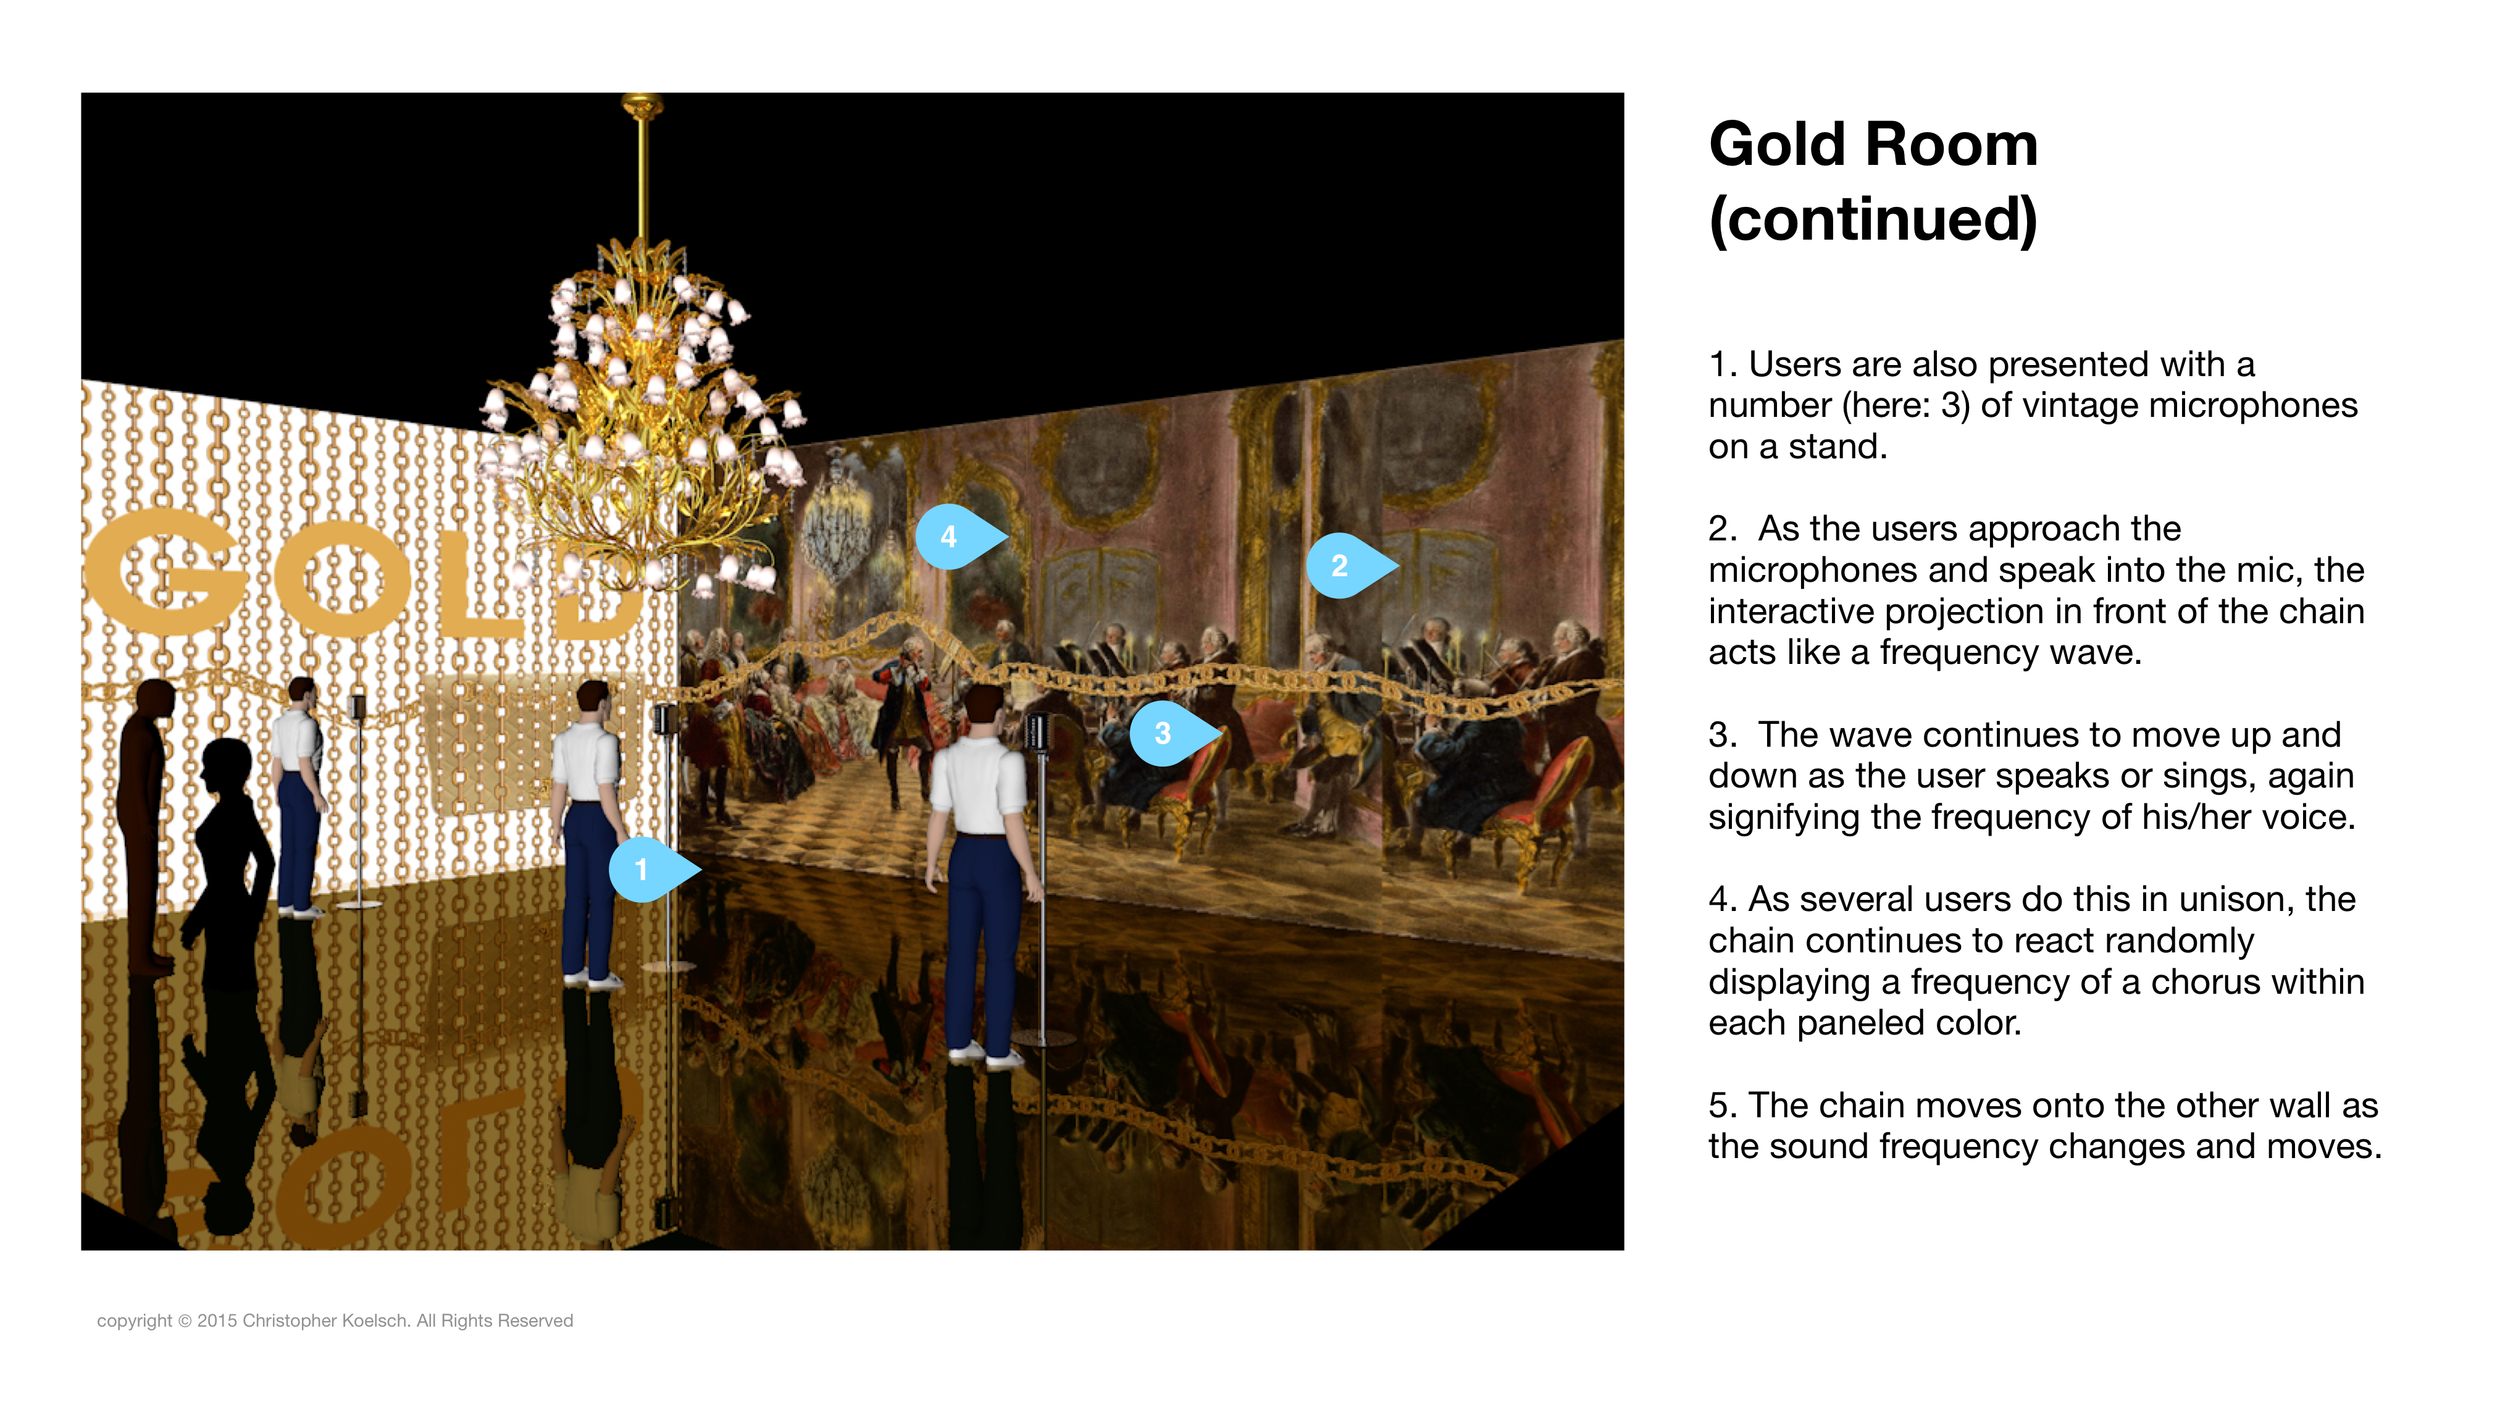 Demonstrated Technology : Gold Room  This application shows how a users voice can make a frequency wave interactively.   https://www.youtube.com/watch?v=qNf9nzvnd1k